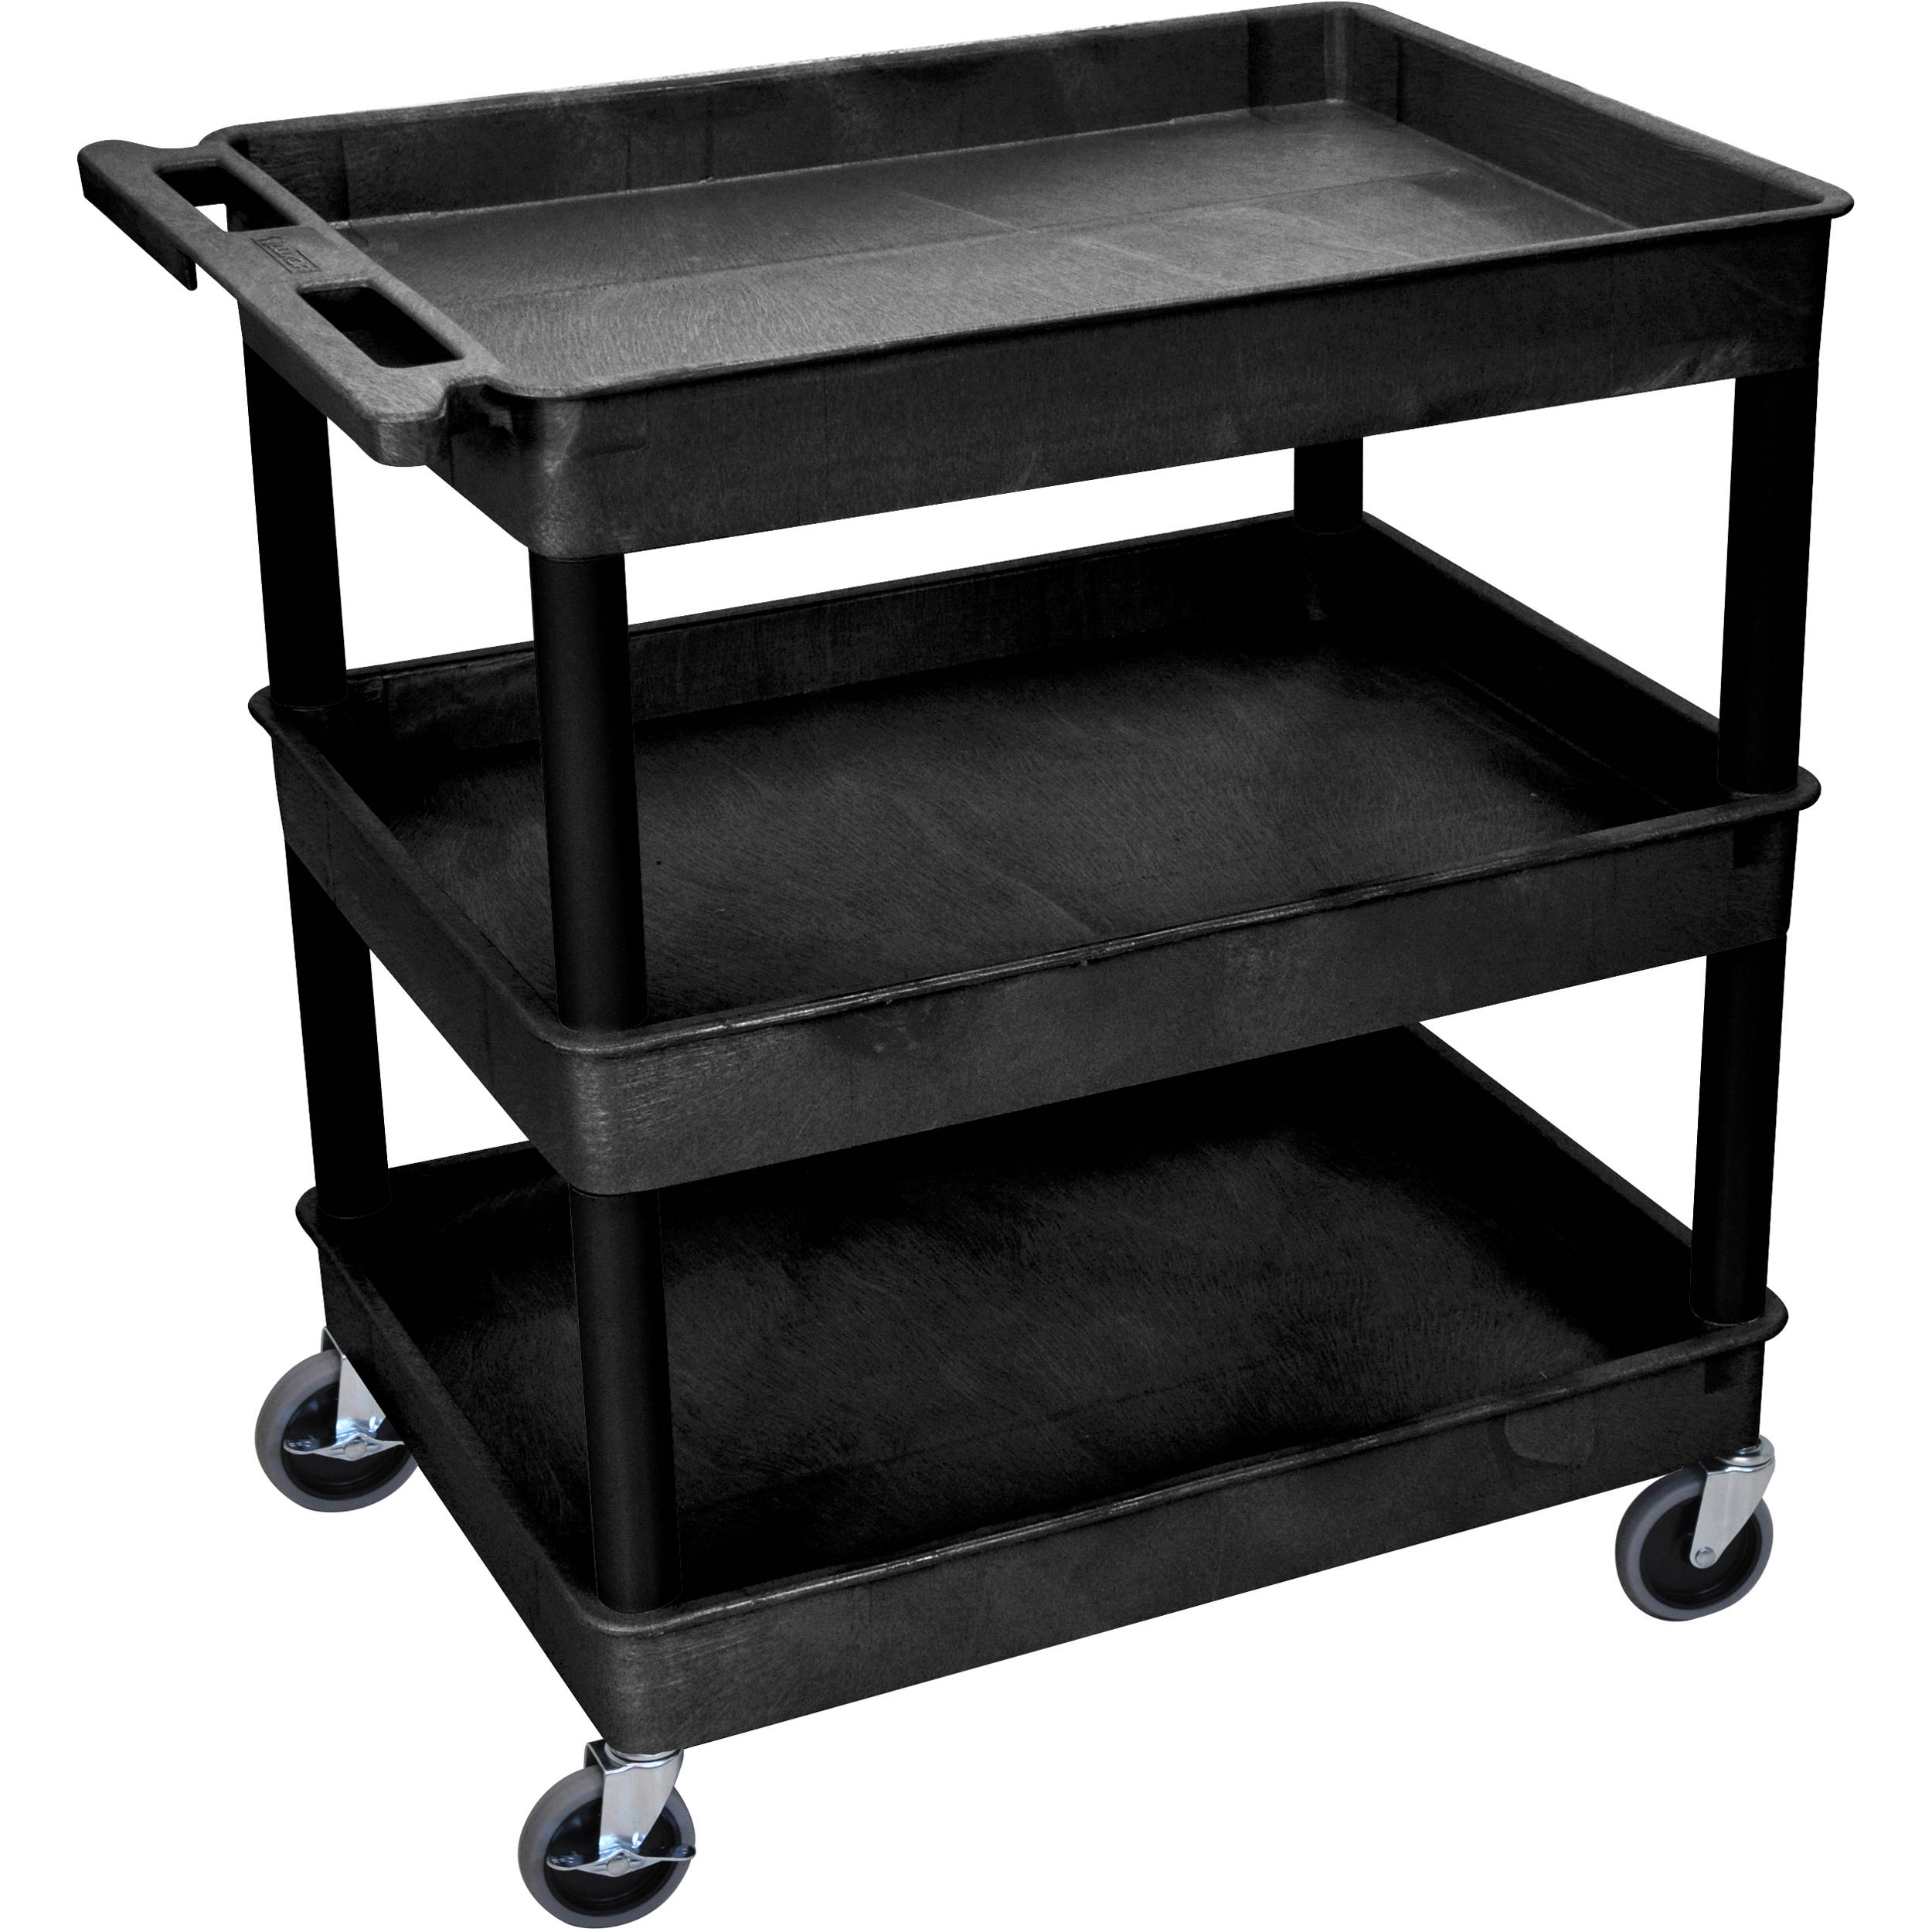 "Factory Utility Cart: Luxor 32 X 24"" Three-Shelf Utility Cart (Black) TC111-B B&H"